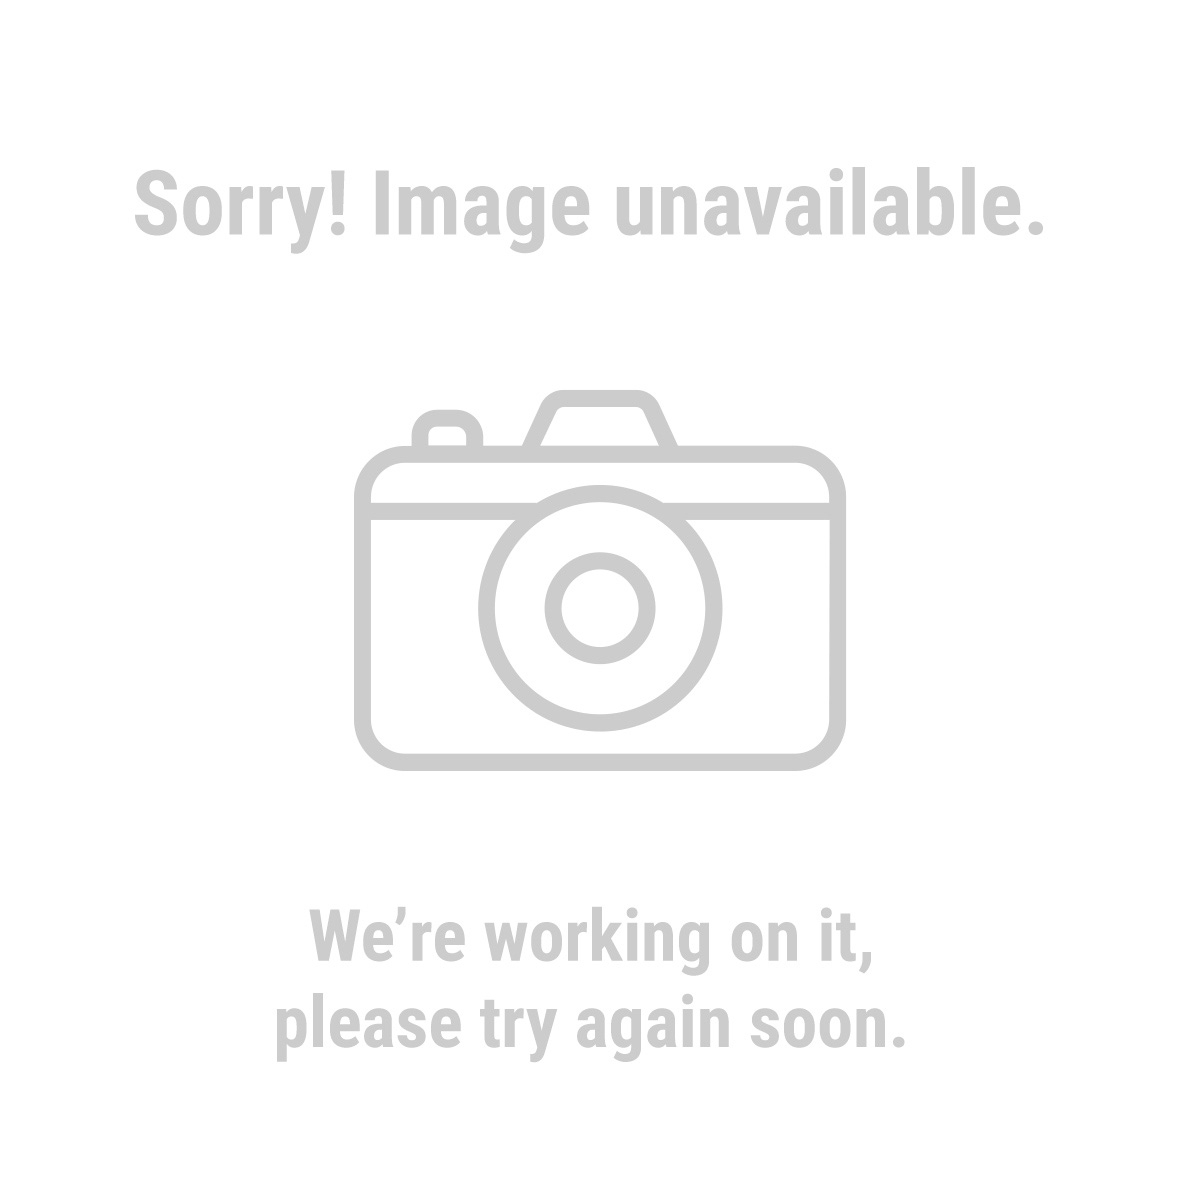 46 Piece Bolt-Type Wheel Puller Set